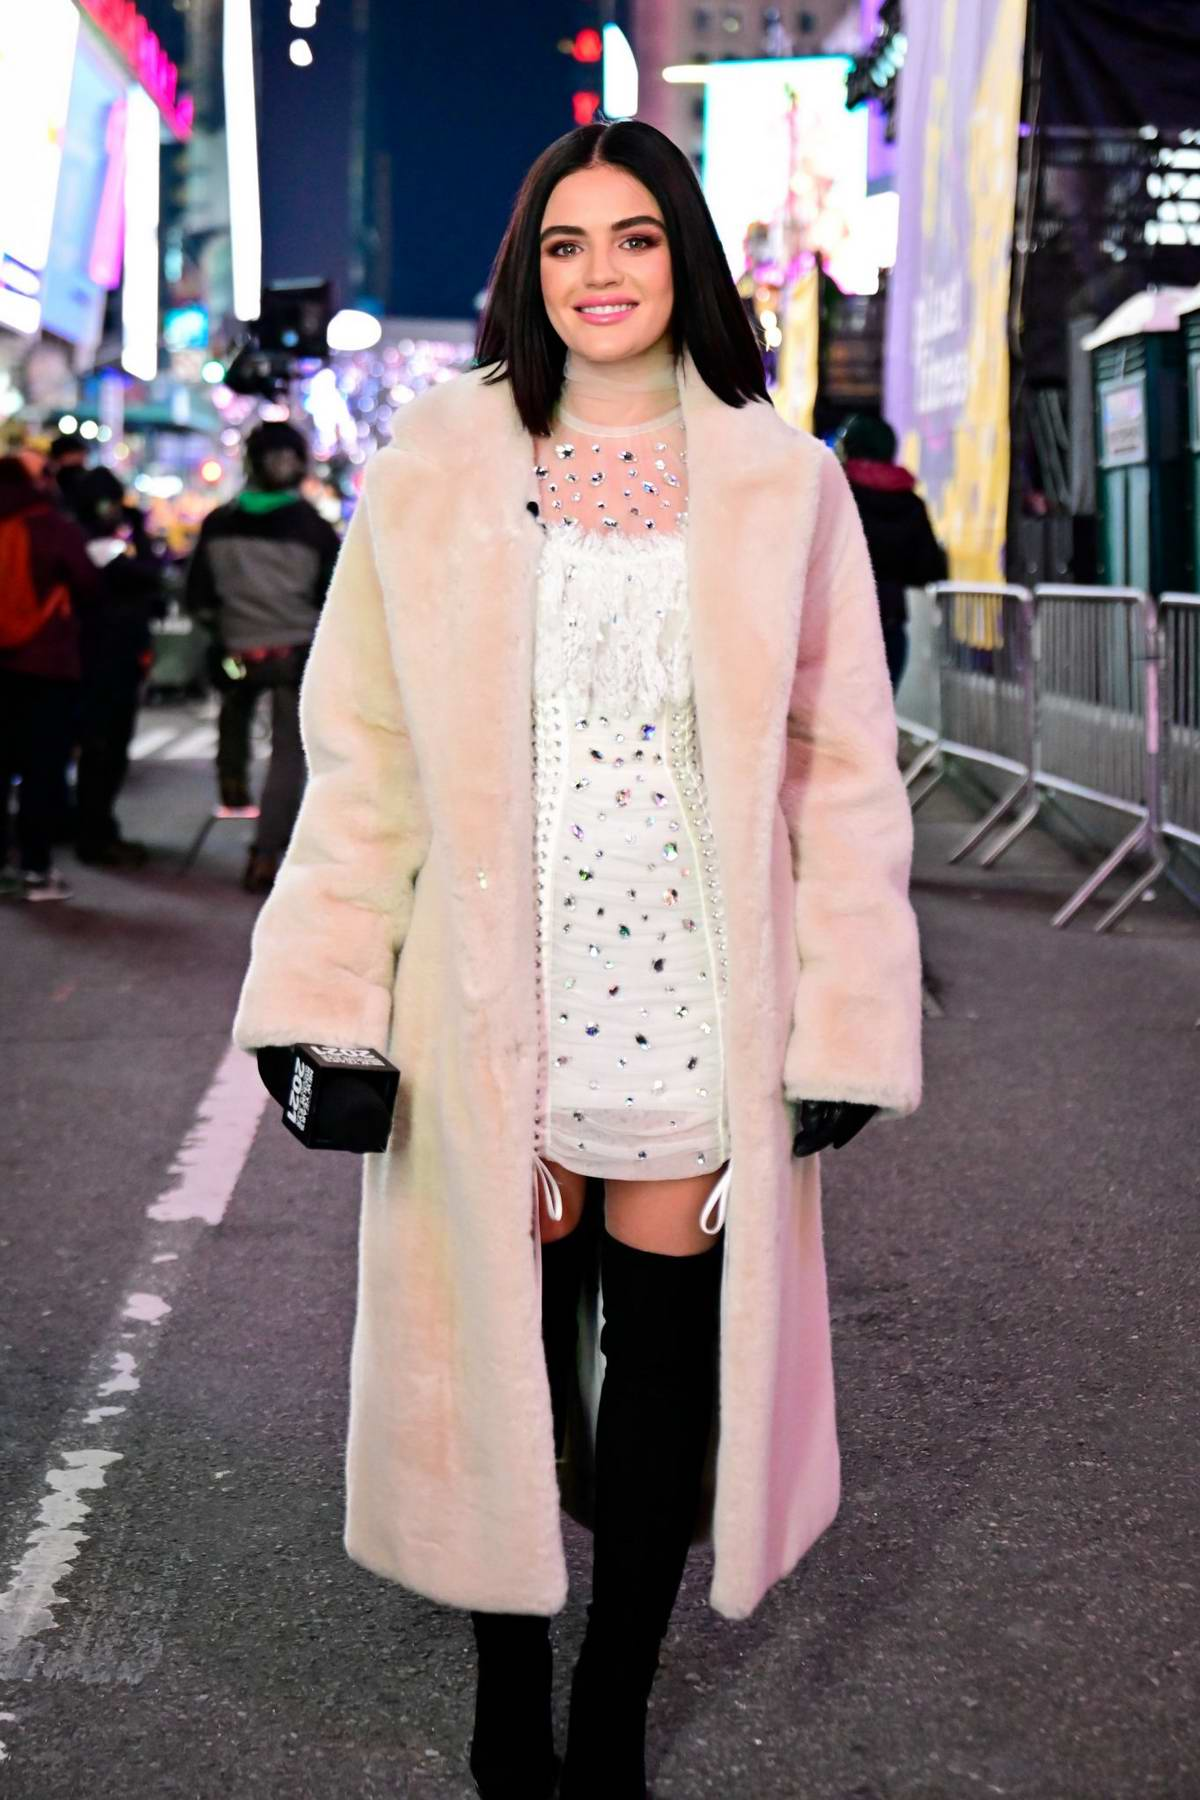 Lucy Hale hosts the Dick Clark's New Year's Rockin' Eve in Times Square, New York City